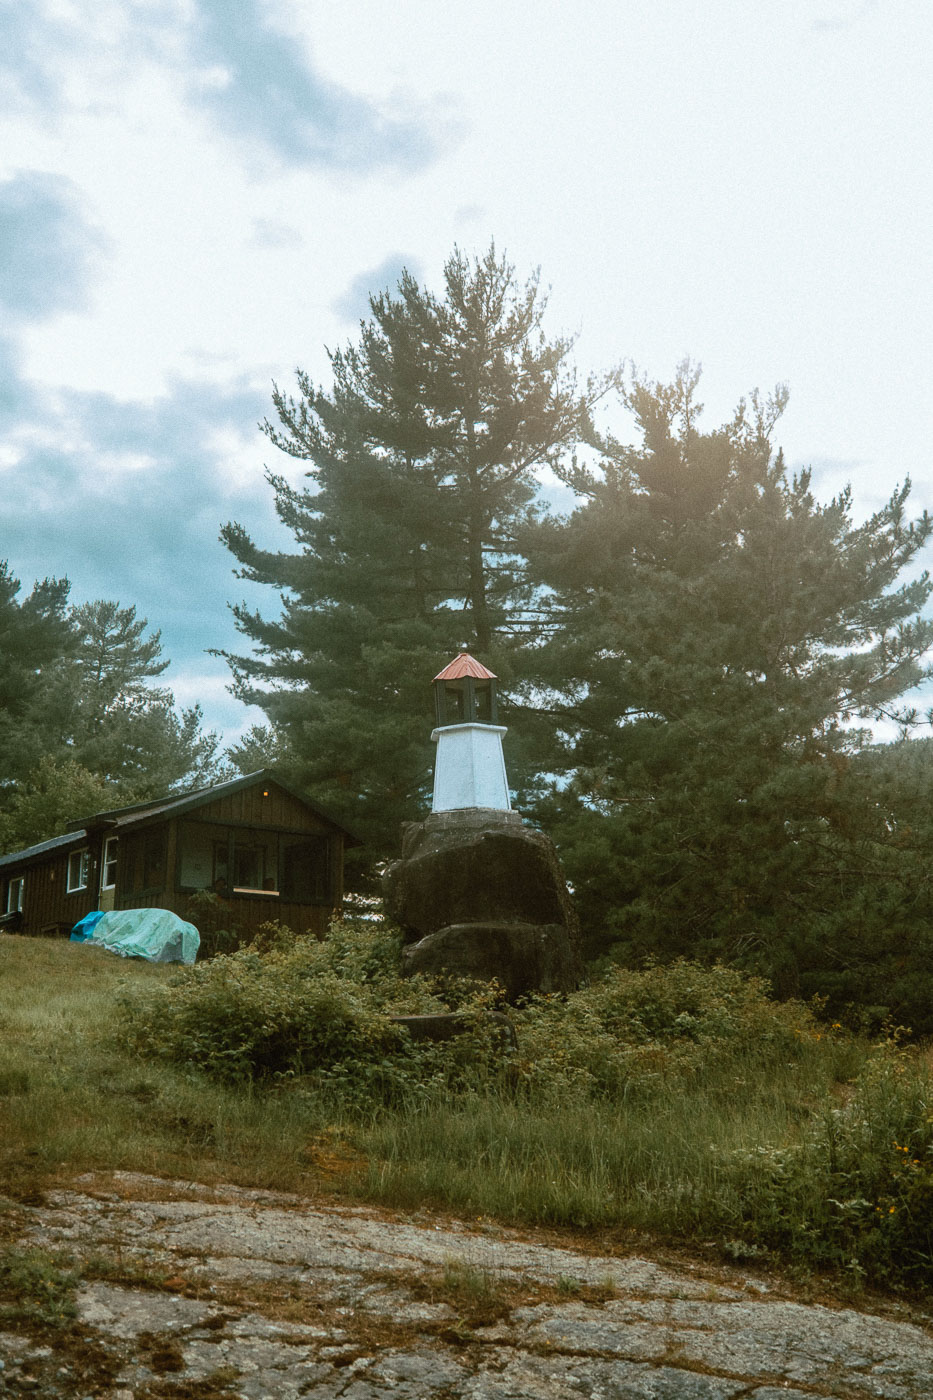 The Pine Falls Lodge Property also includes a working lighthouse